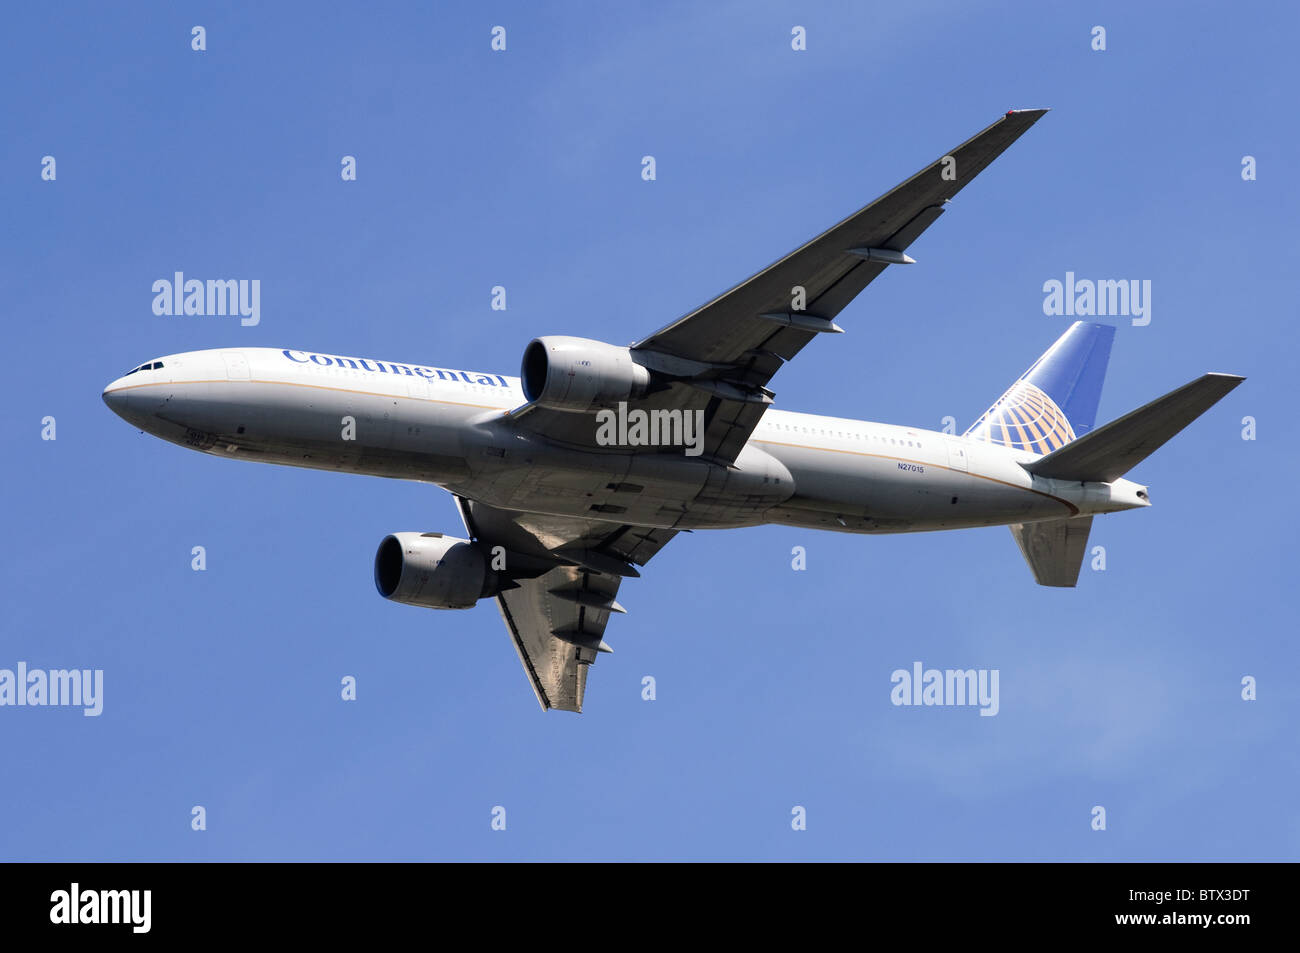 Boeing 777 operated by Continental Airlines climbing out after taking off from London Heathrow Airport - Stock Image